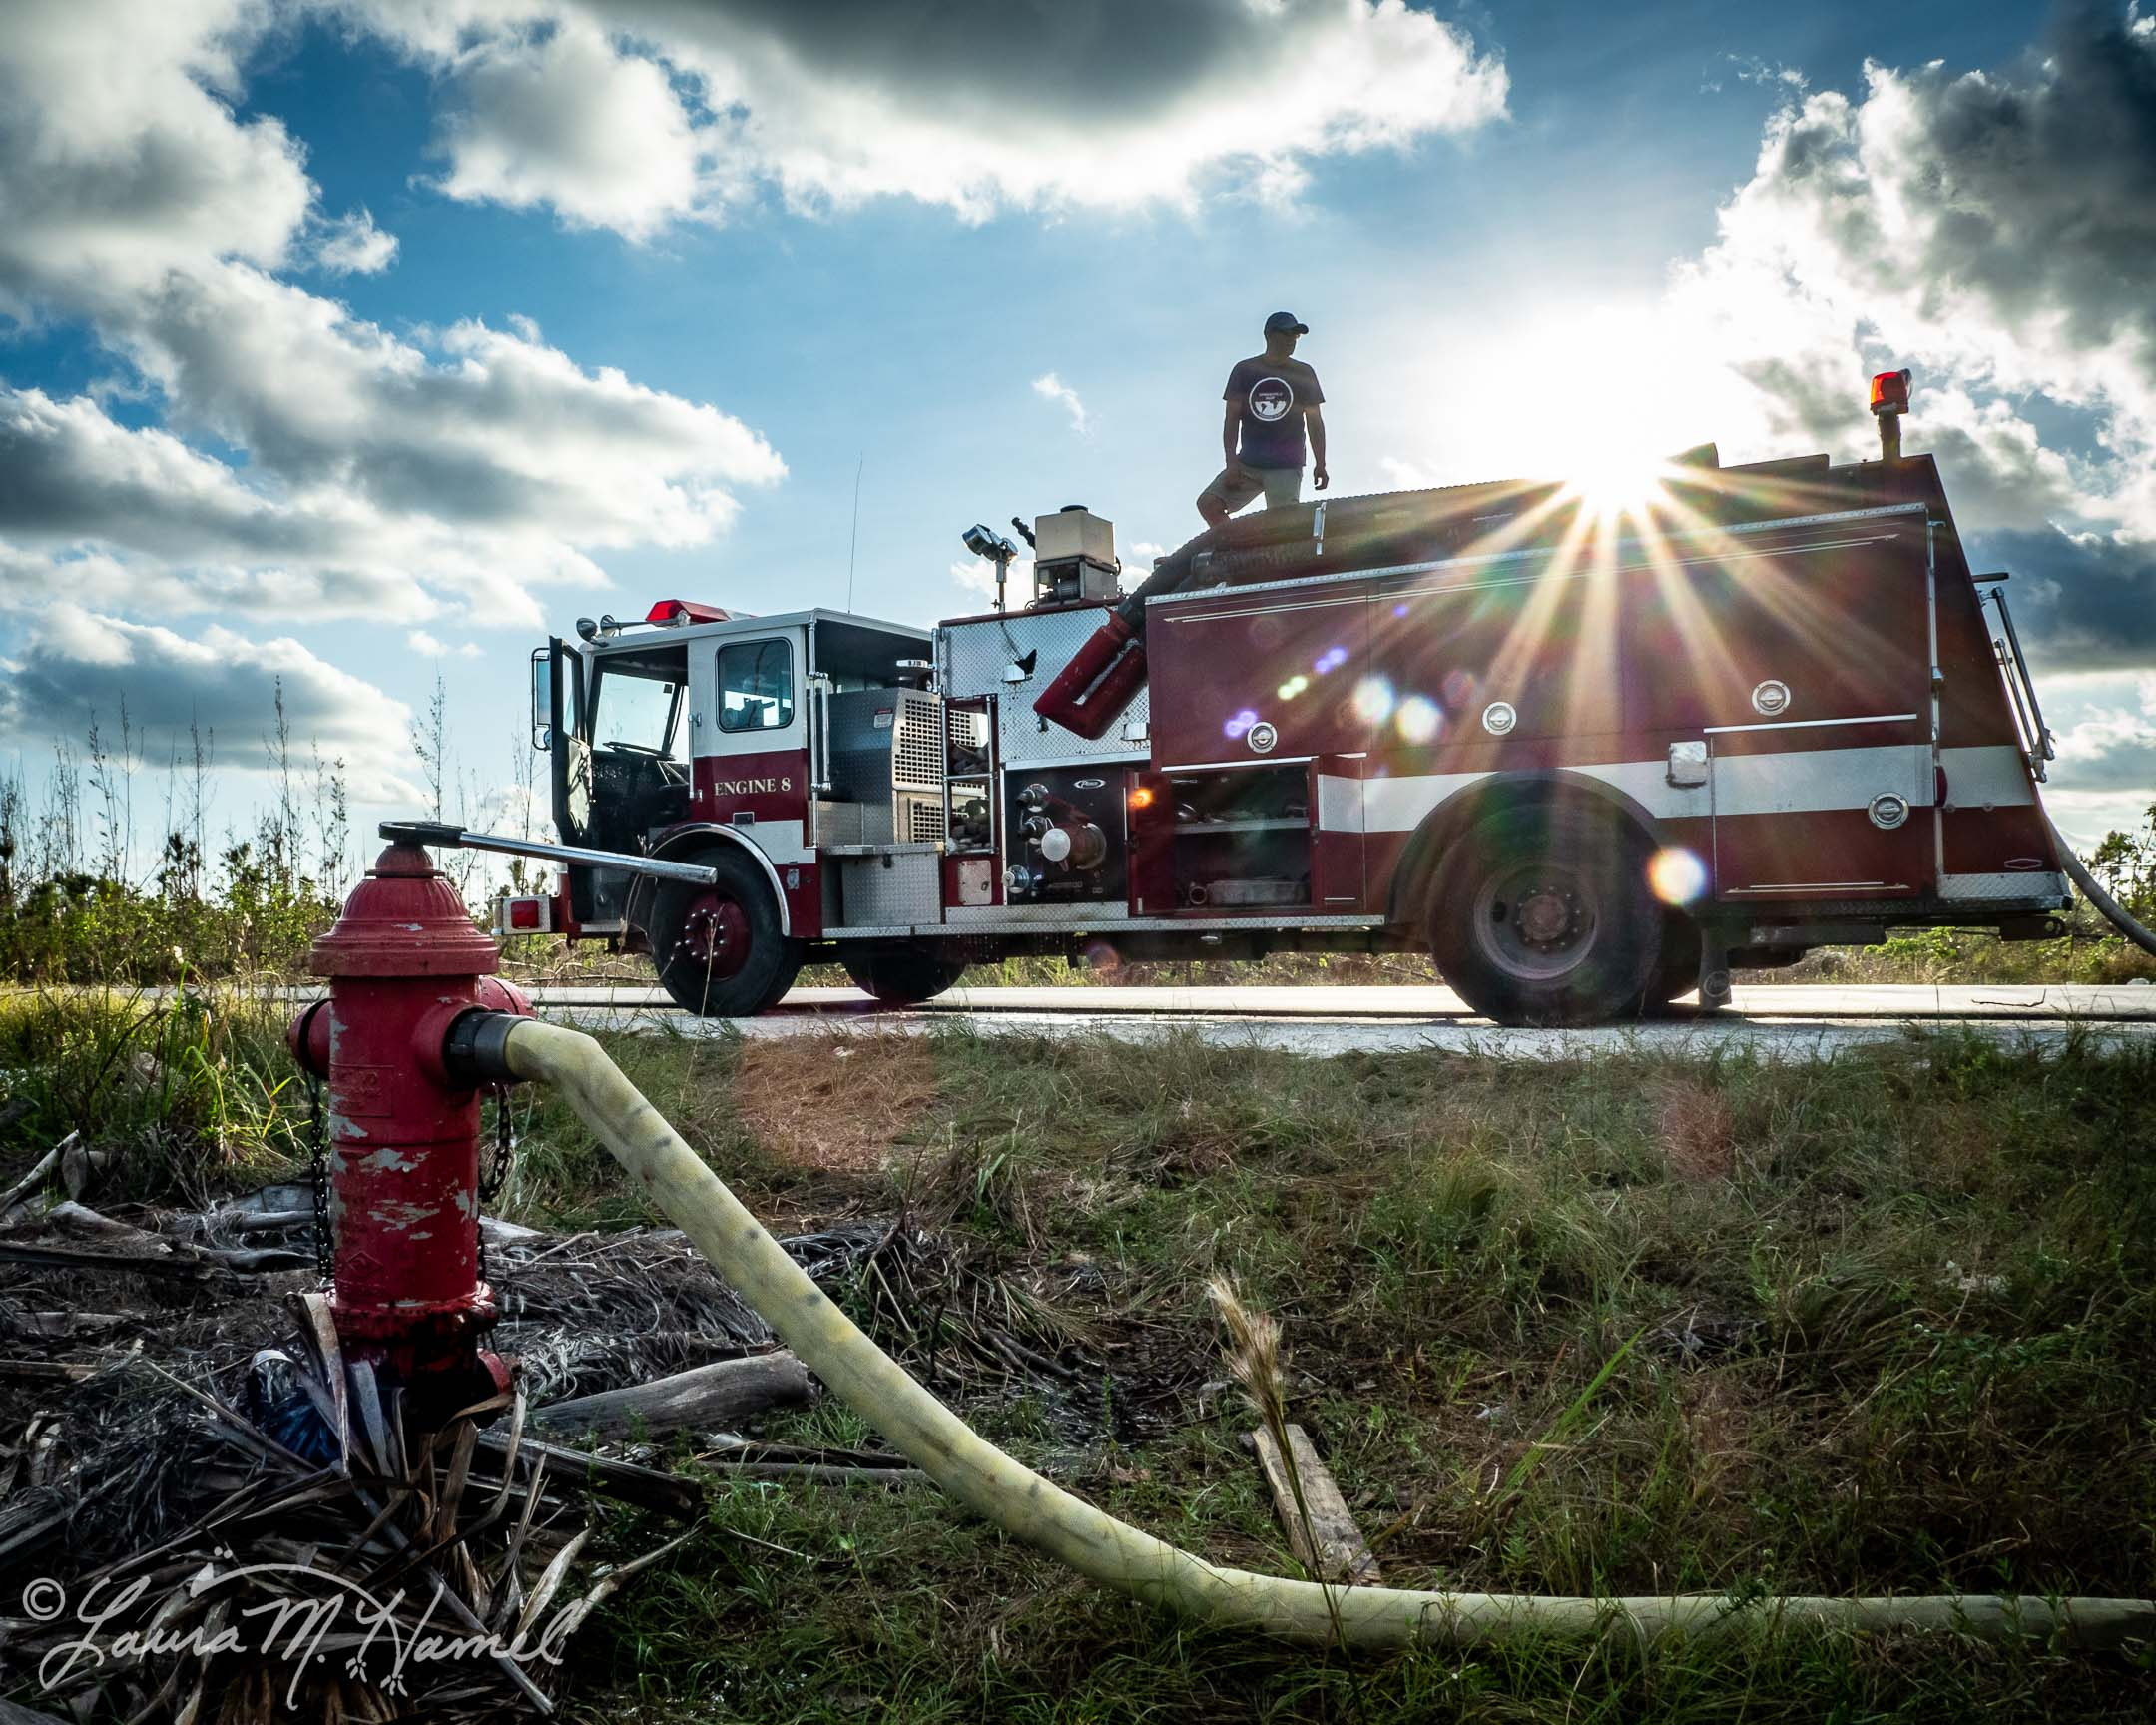 OpenWorld Relief volunteers helping the Marsh Harbour Volunteer Fire Department with cleanup of Engine 8 by taking it to a hydrant to be flushed out. Marsh Harbour, Abaco, The Bahamas. Hurricane Dorian Relief 2019. OpenWorld Relief/Laura M. Hamel